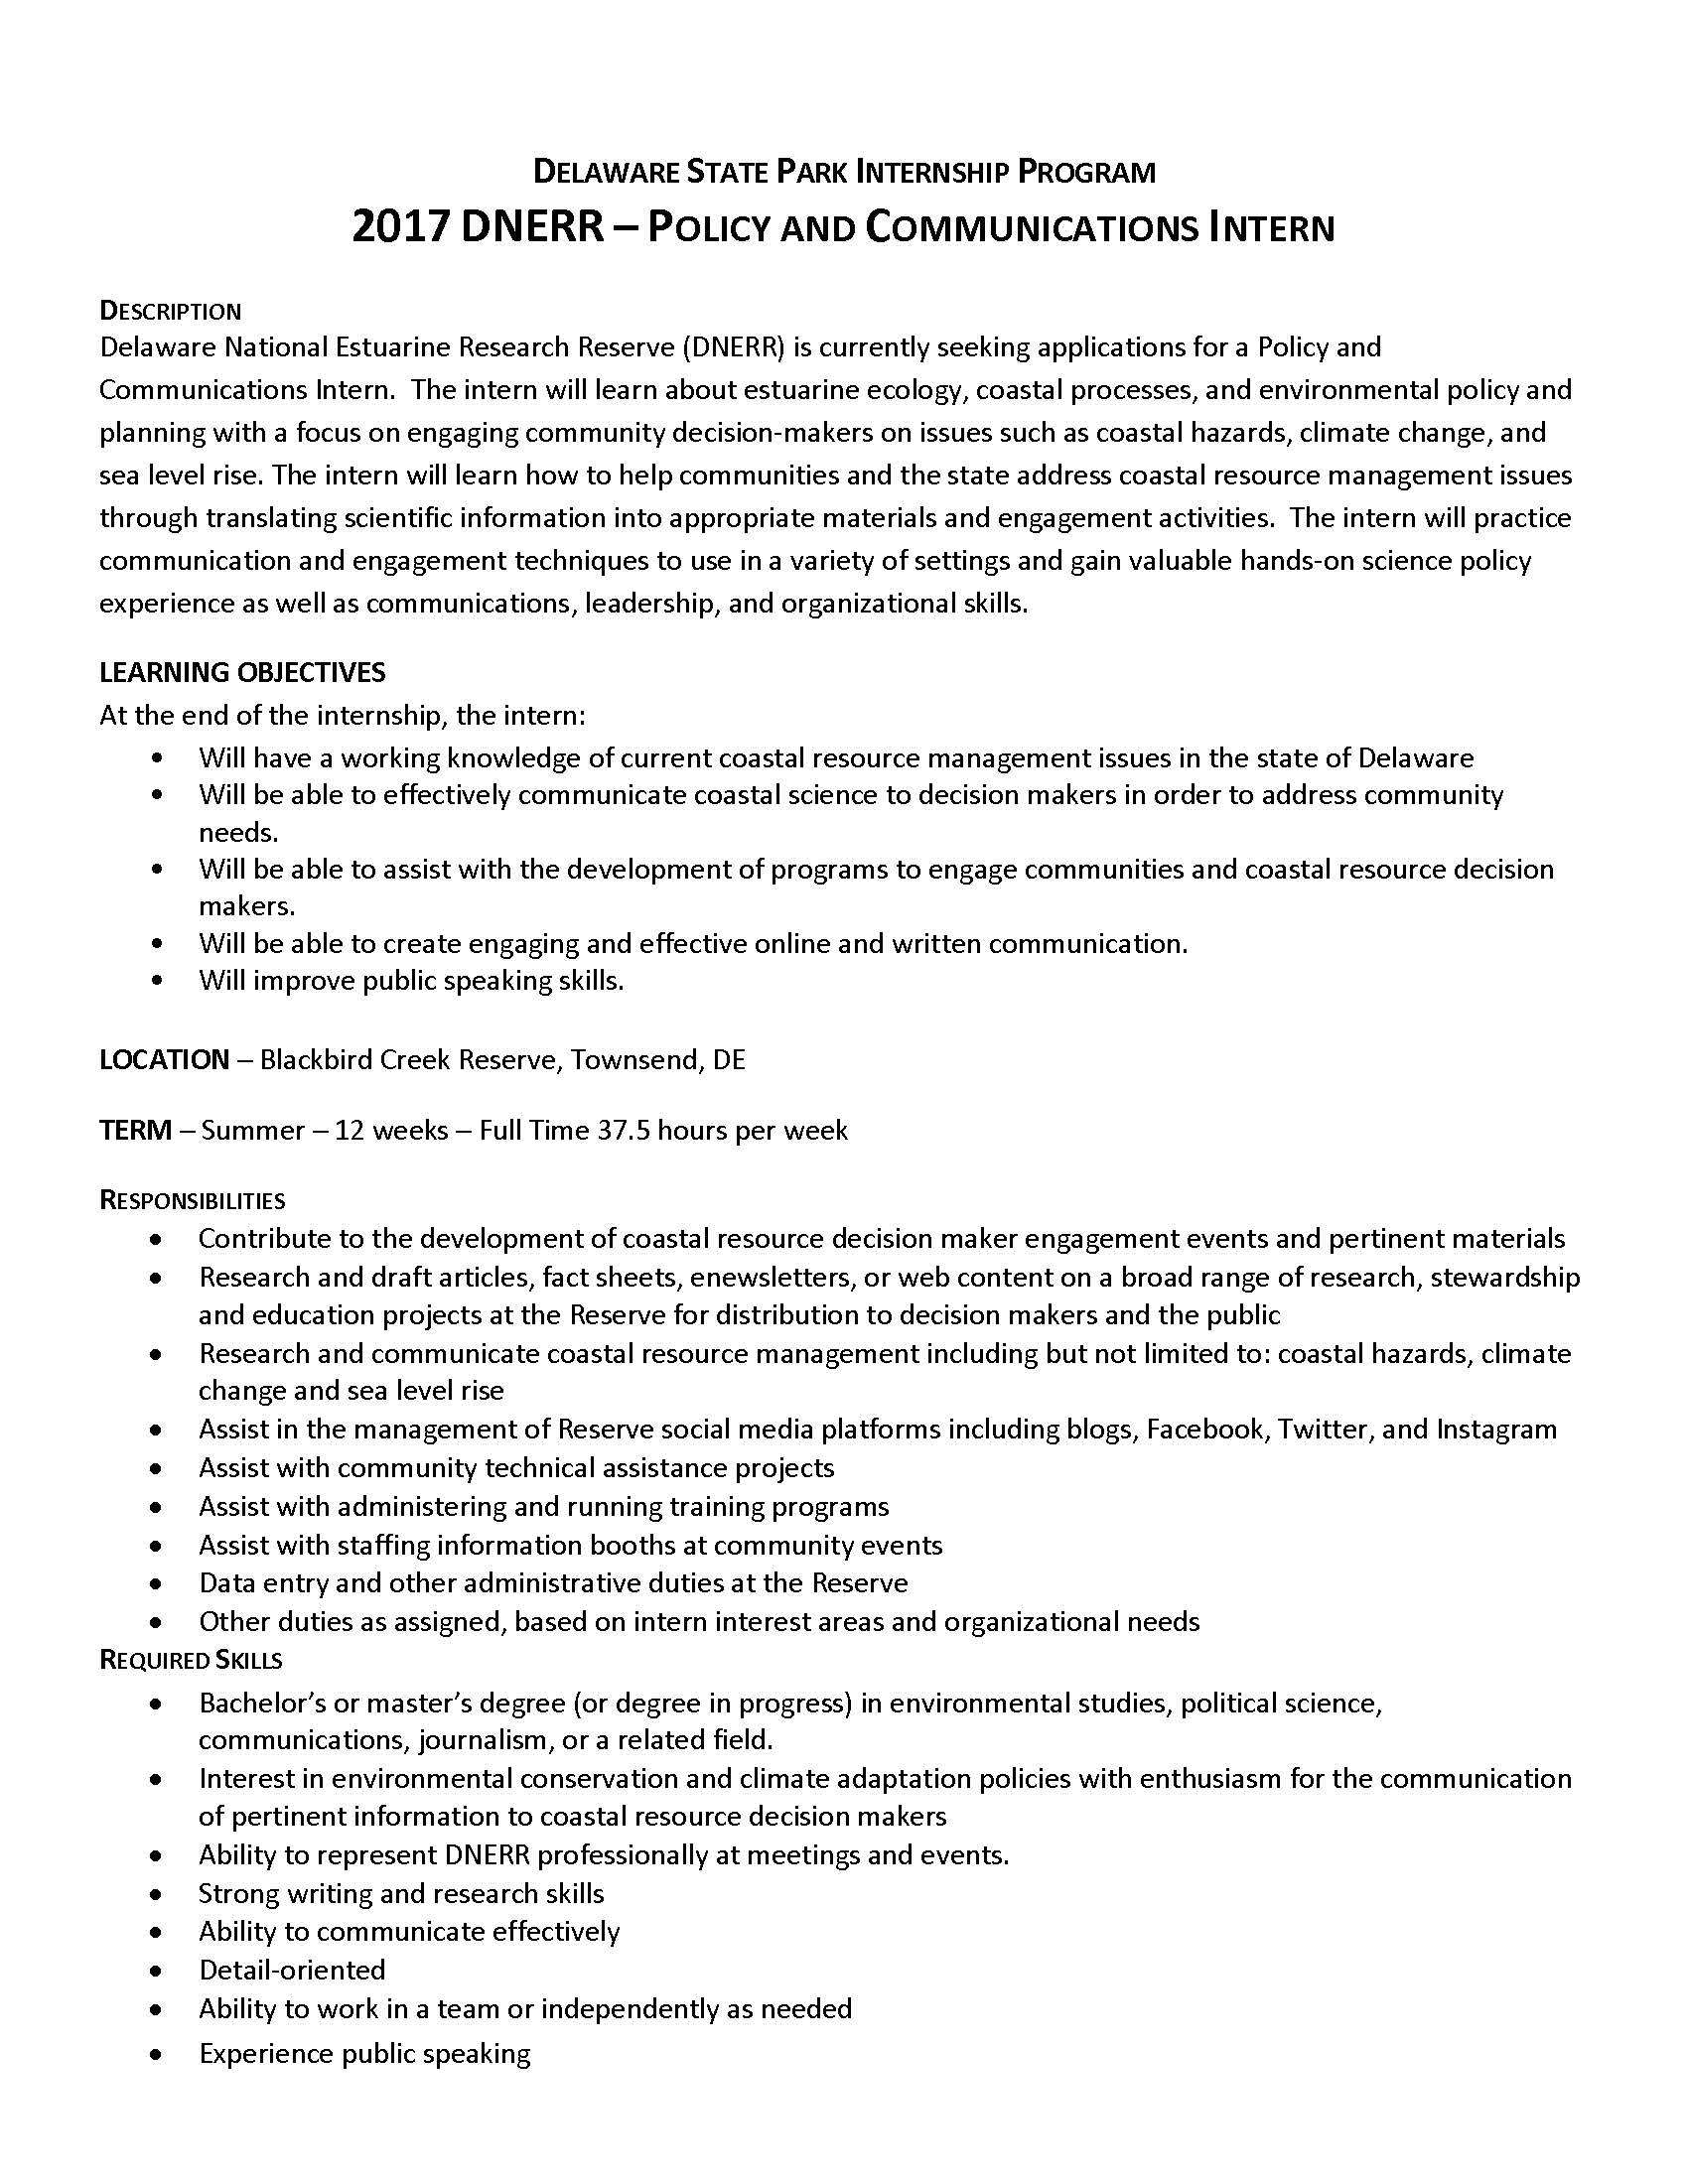 dnerr-policy-and-communications-intern-2017-final-1-002_page_1